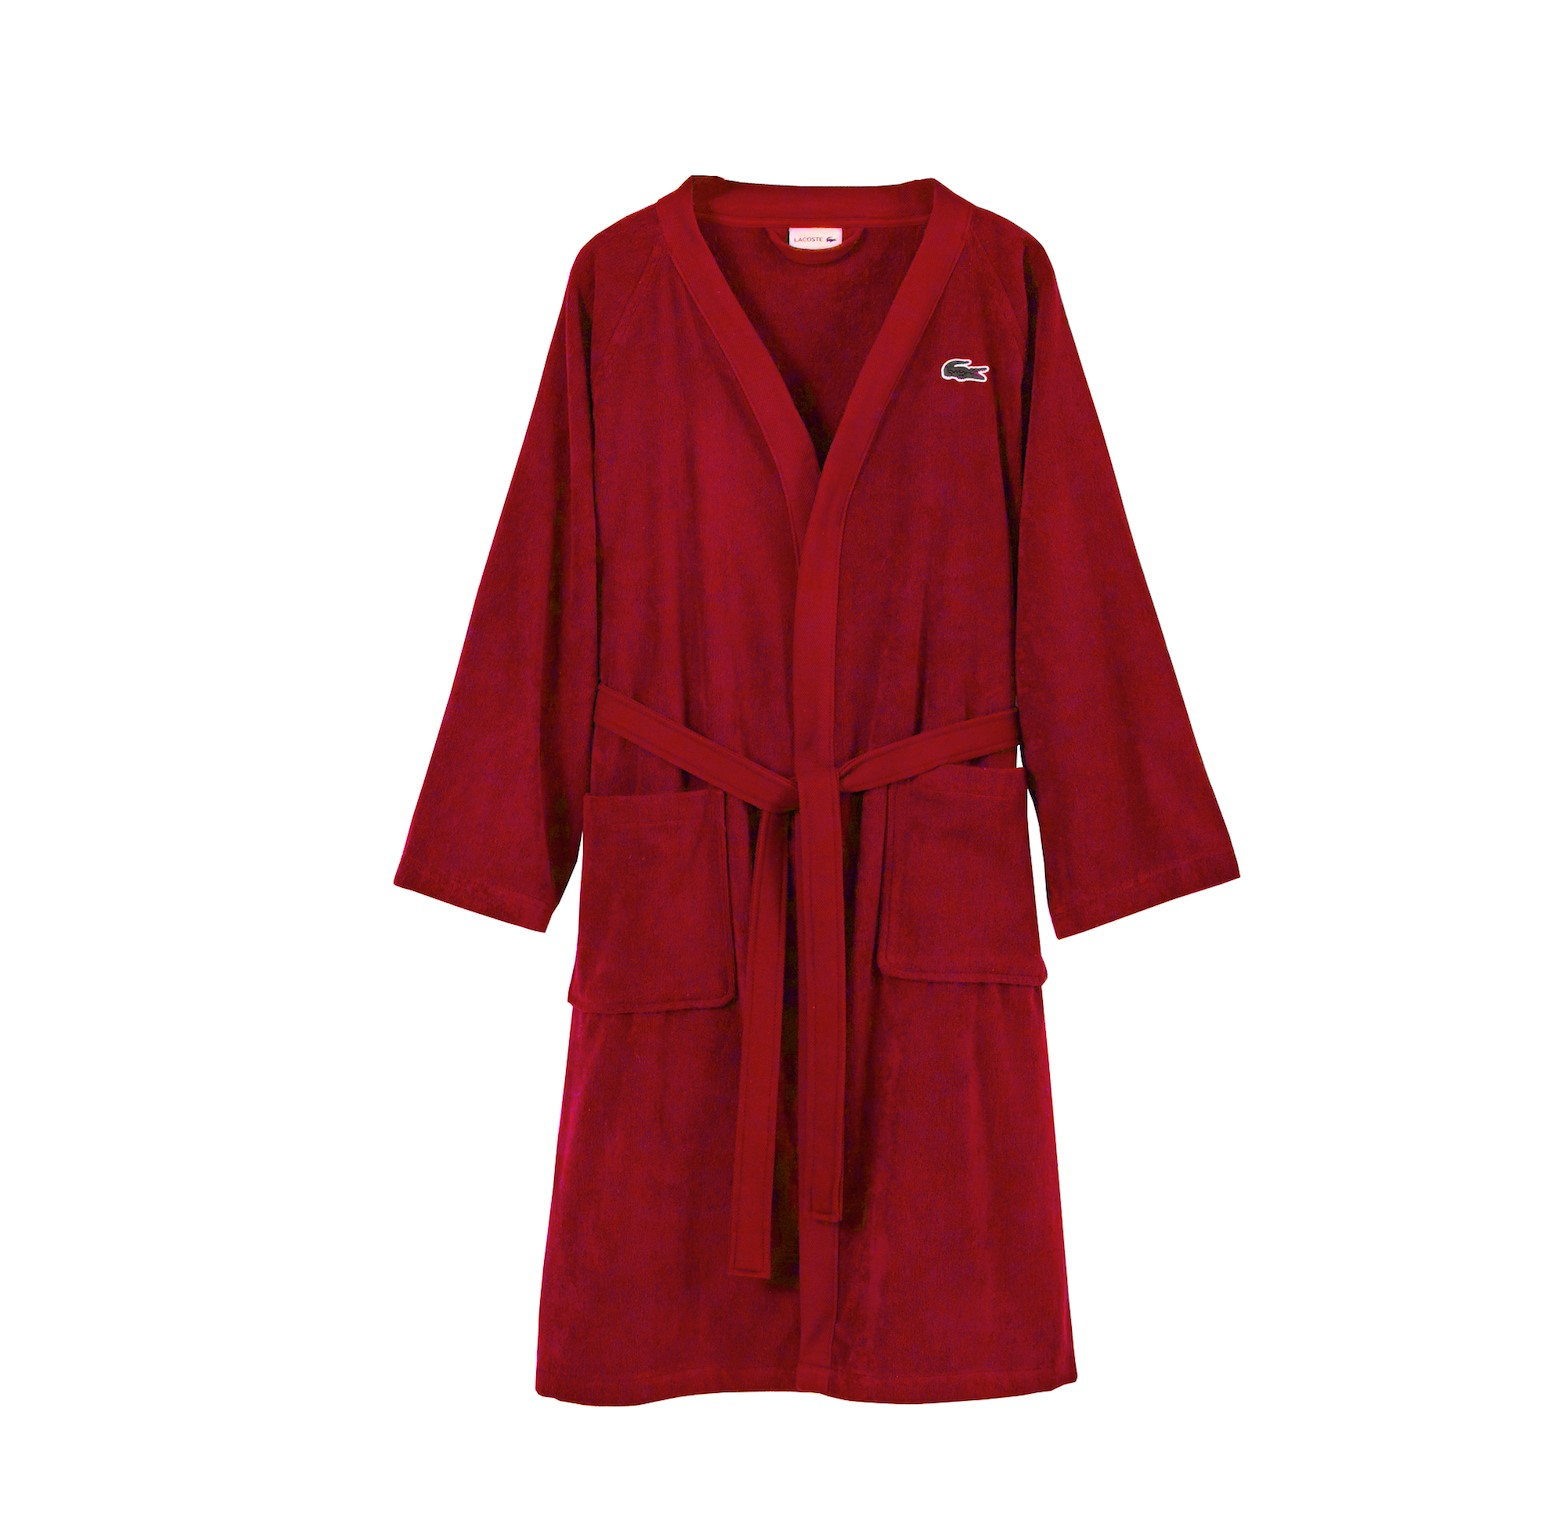 2019 holiday gift guide Lacoste Home Pique Bath Robe